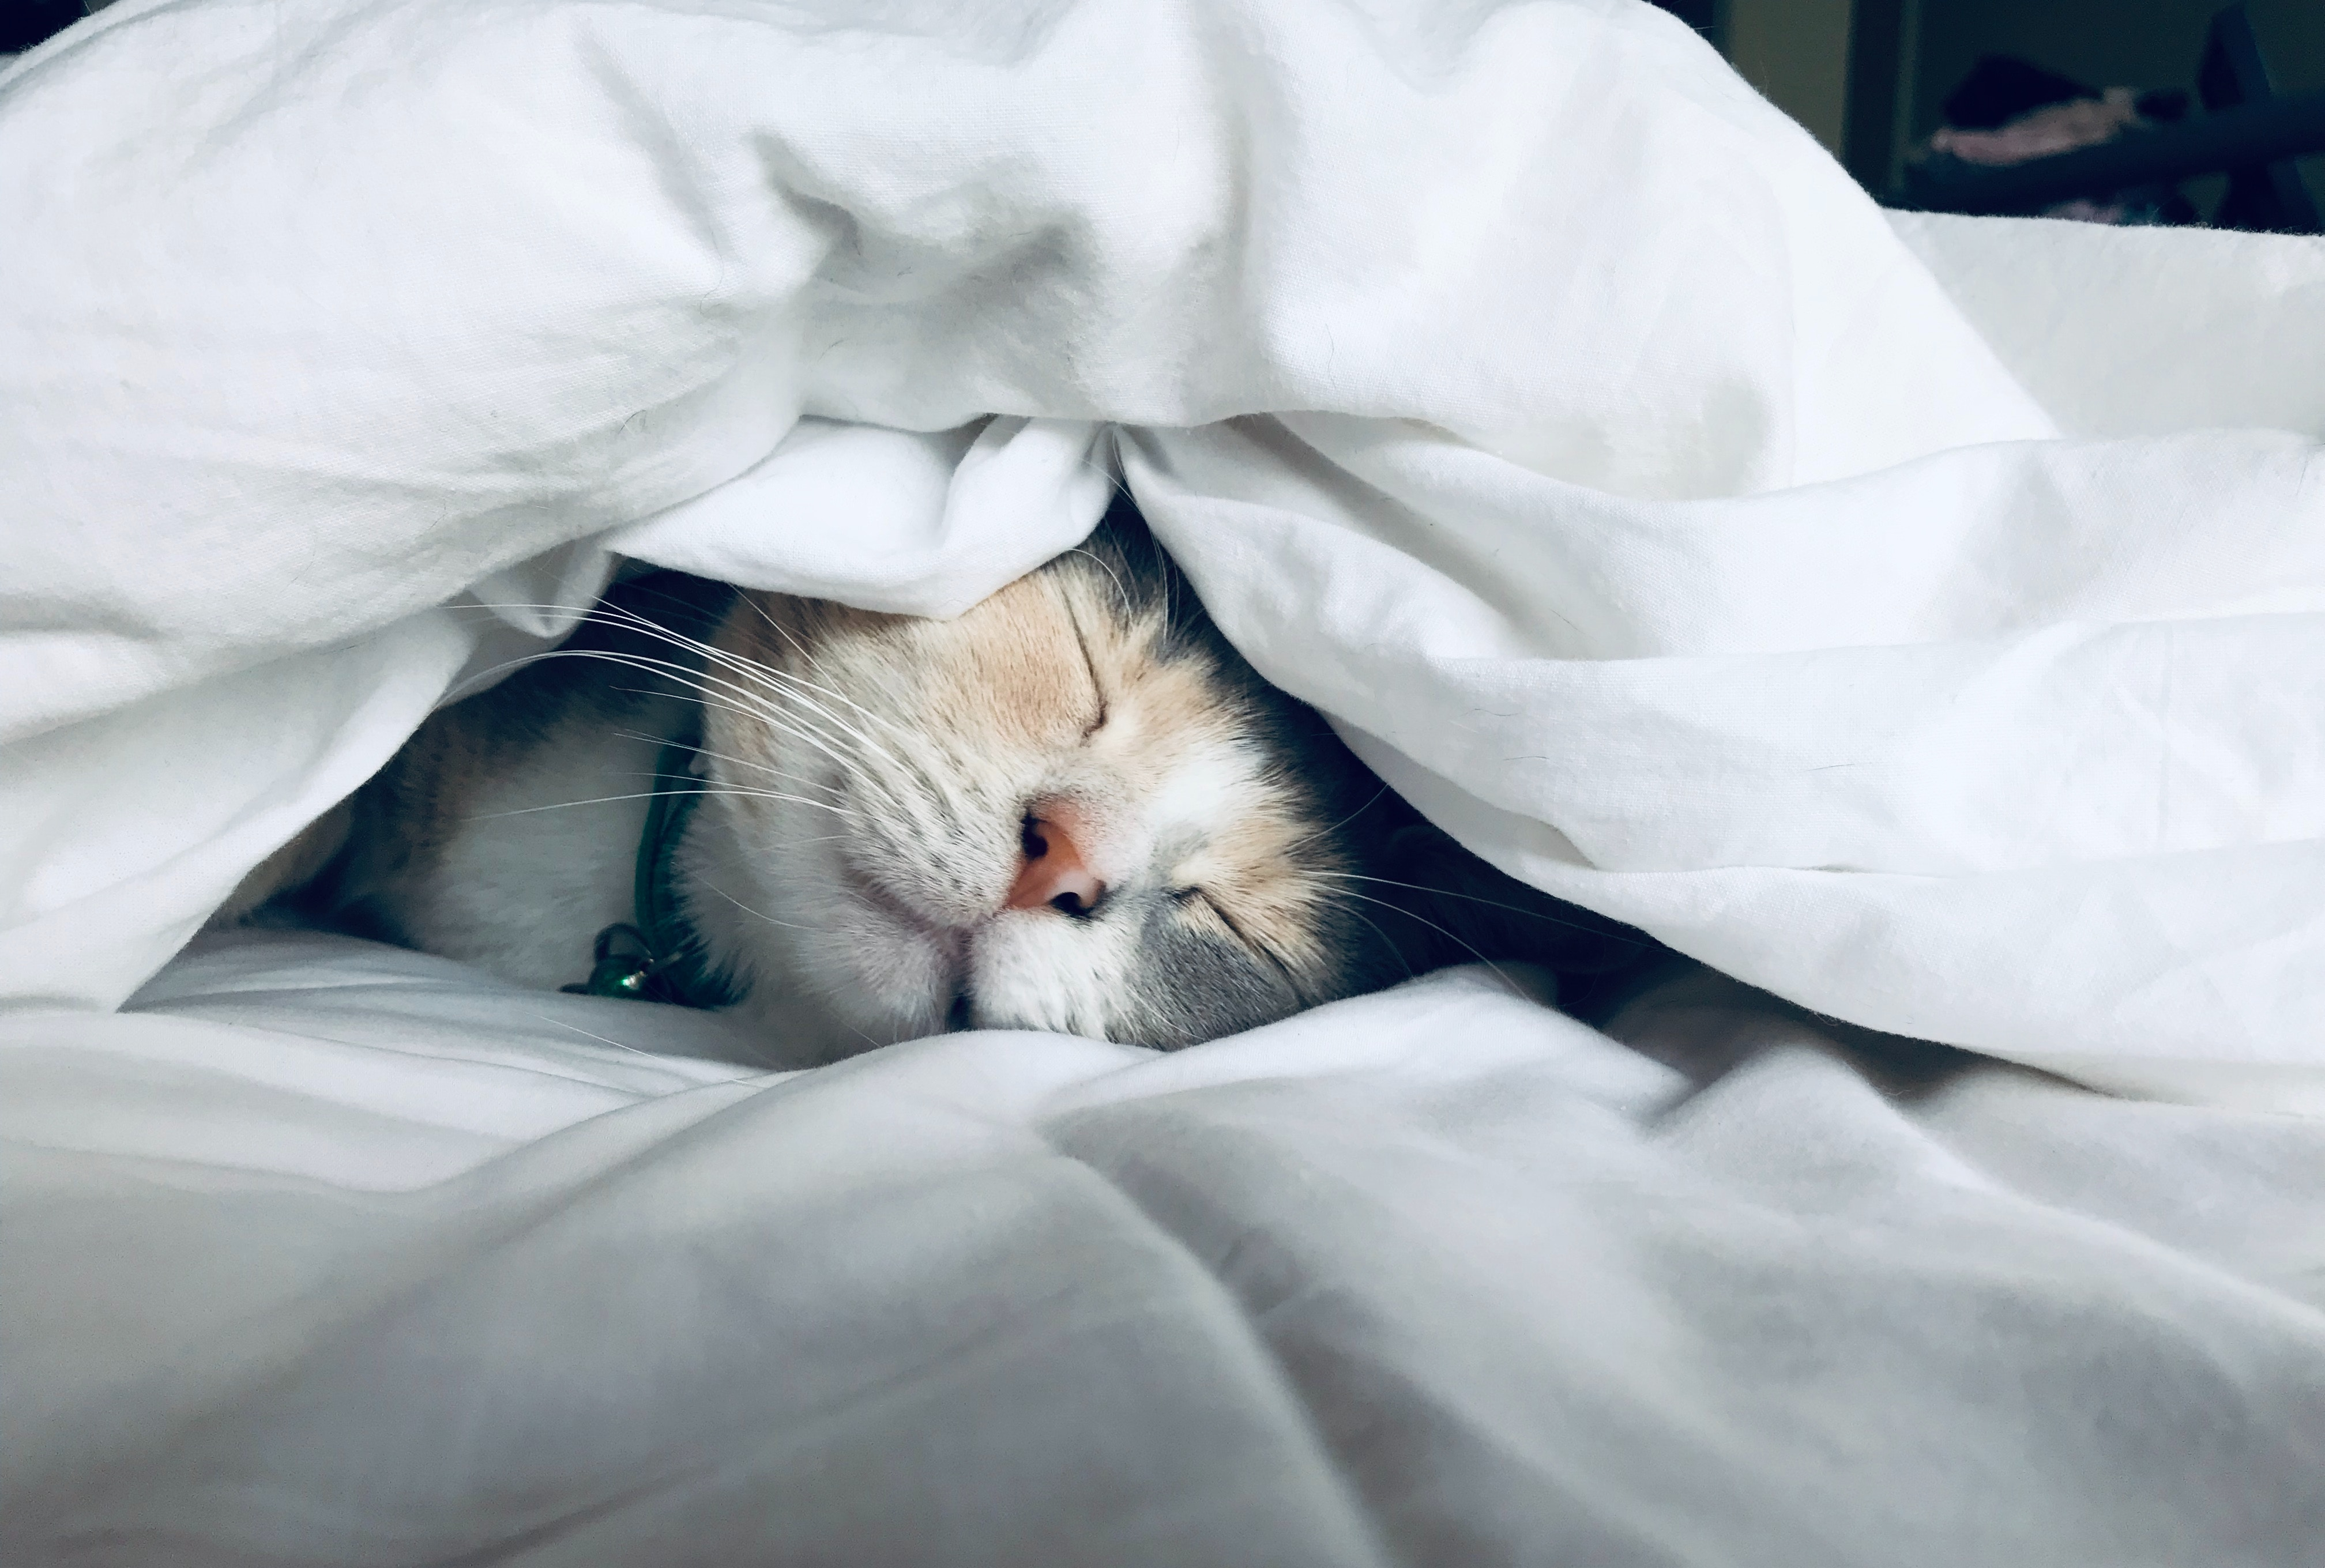 A smiling orange and white cat sleeping beneath a soft-looking, white comforter.